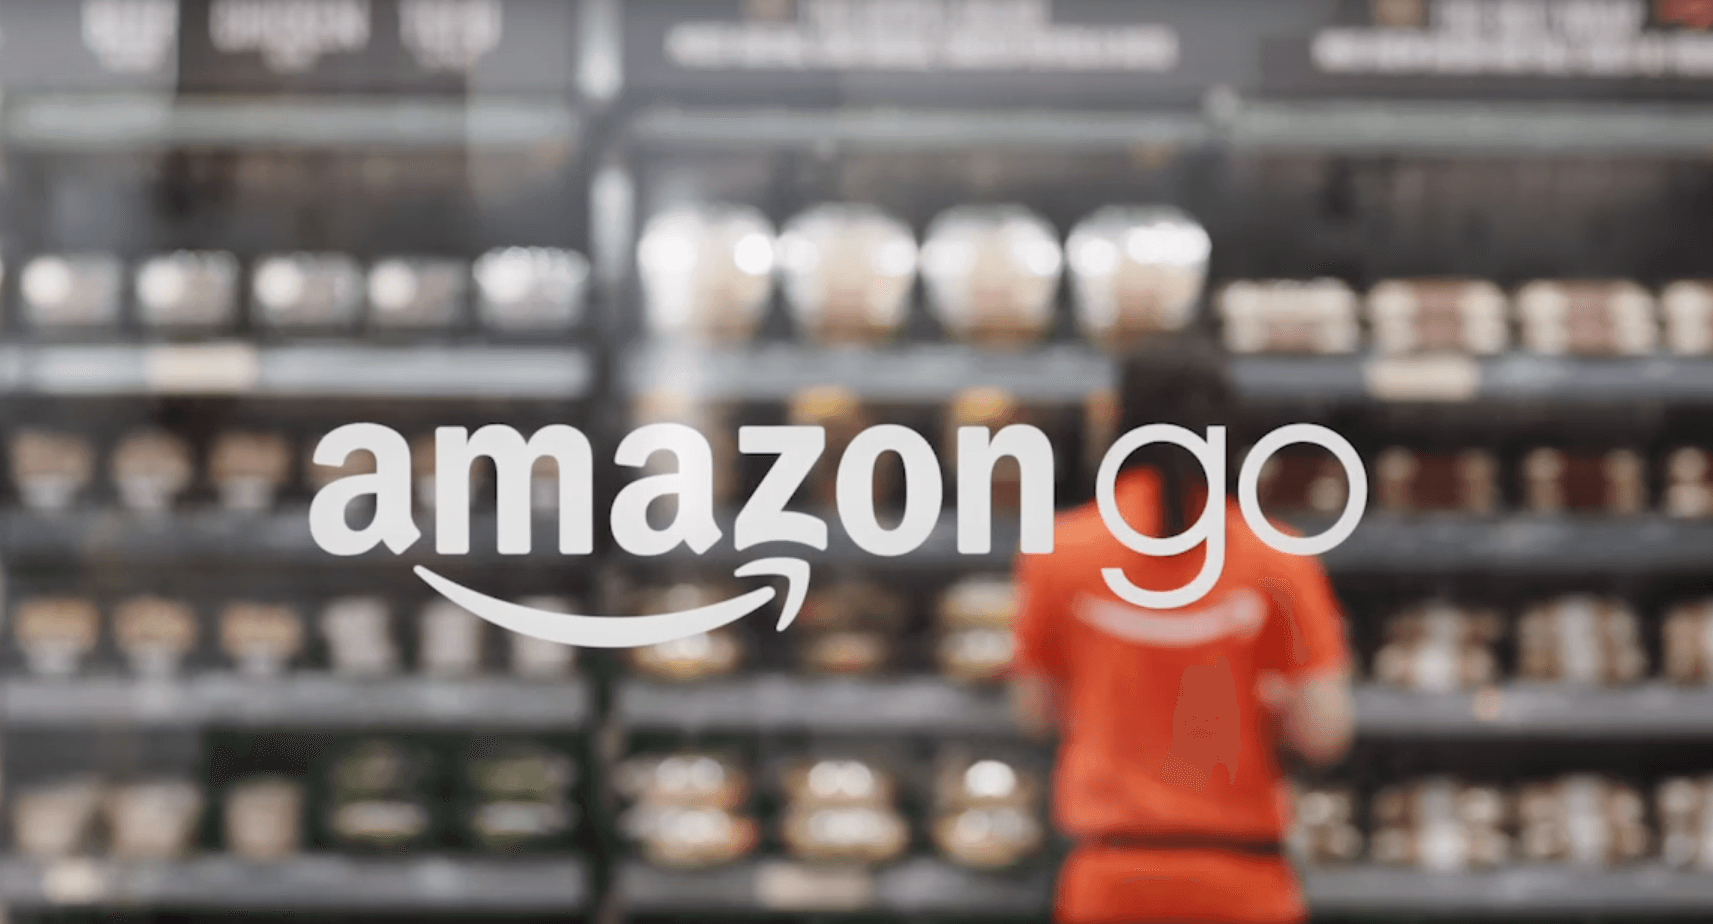 Amazon's cashierless store is coming to New York